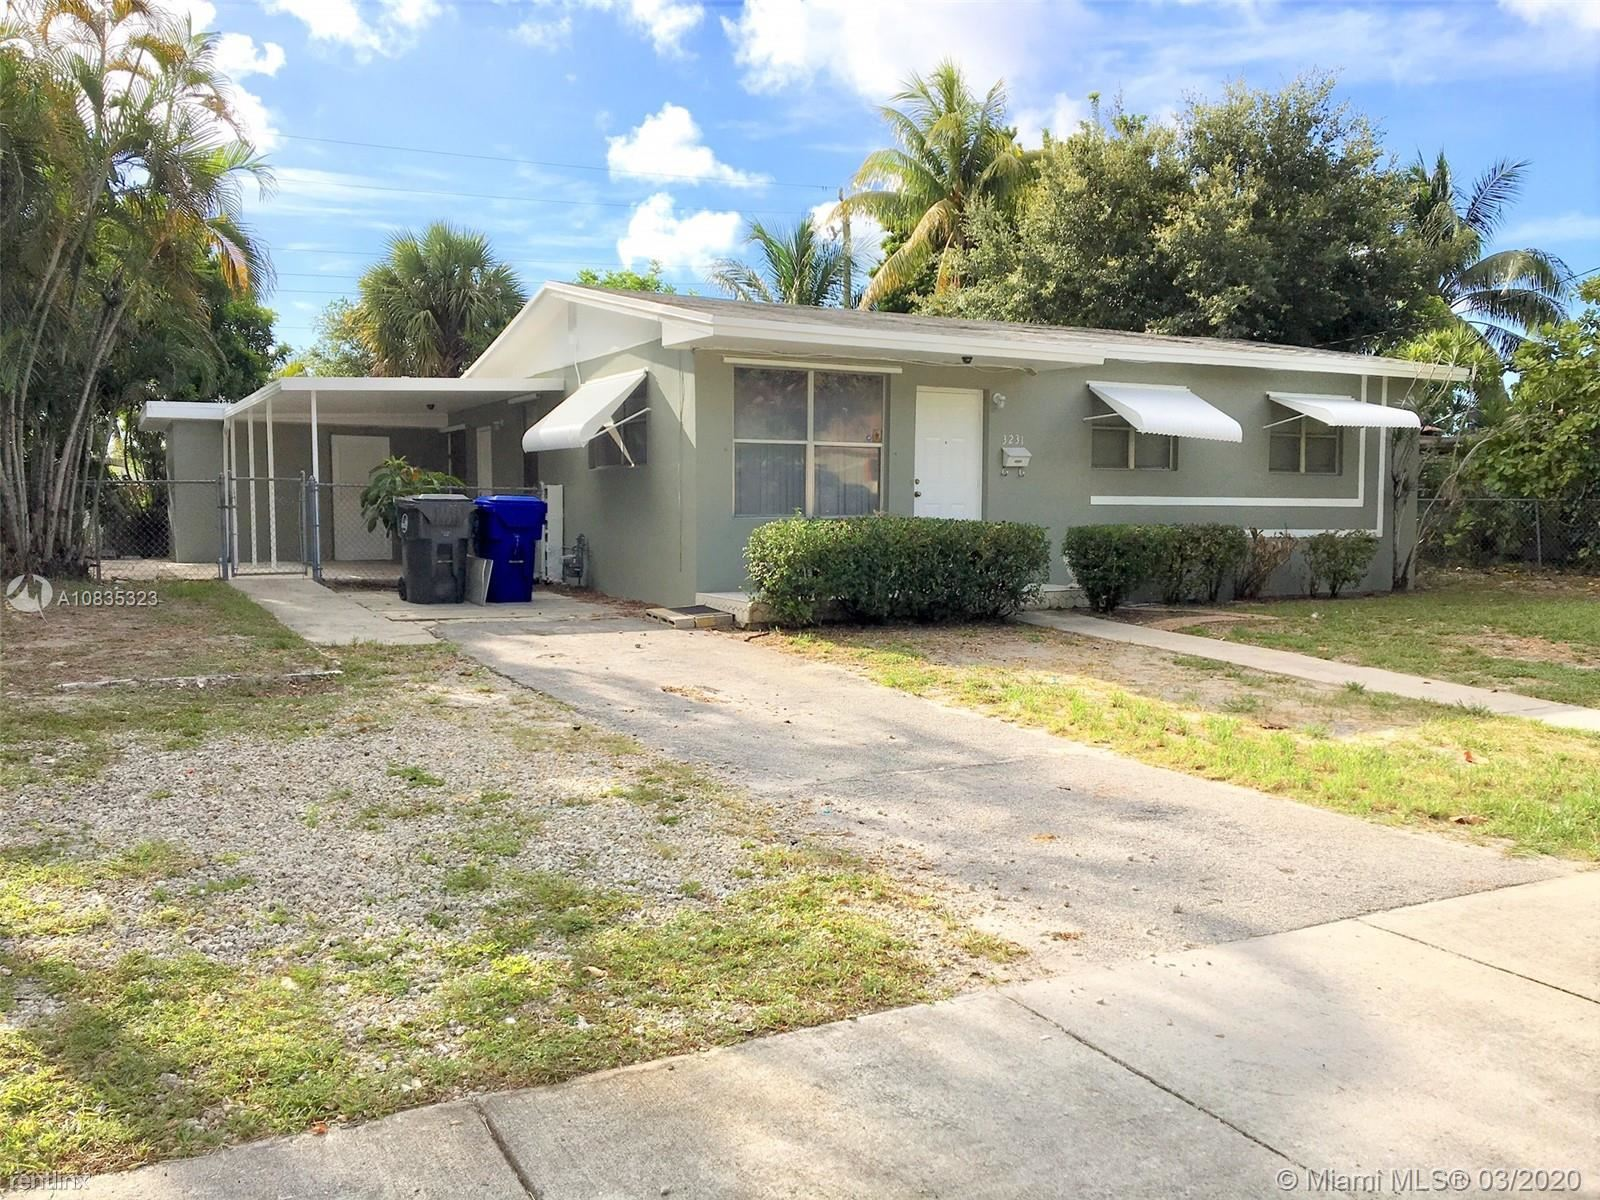 3231 SW 32nd Ave, West Park, FL - $1,700